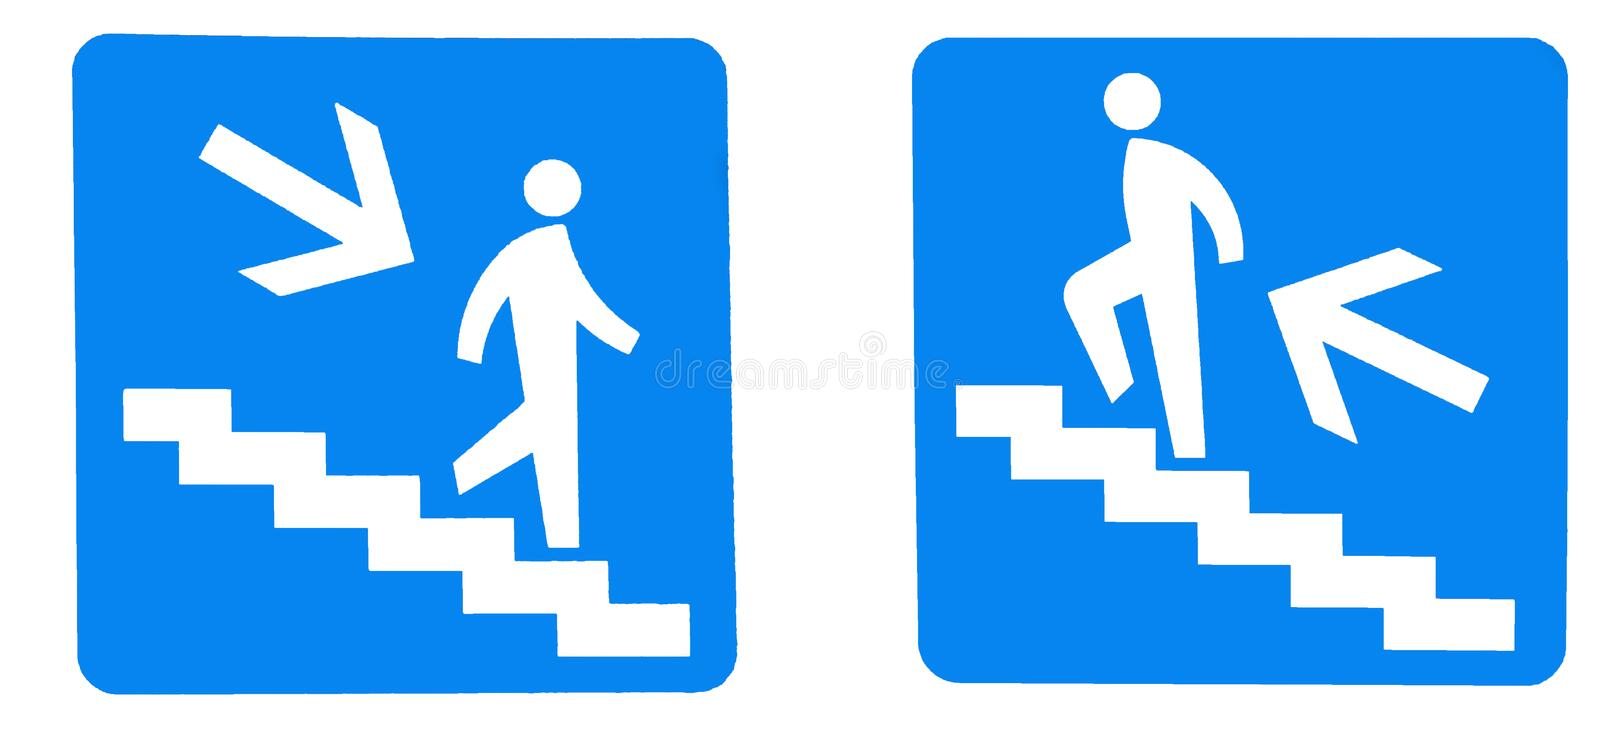 going up and down Sign royalty free stock photos